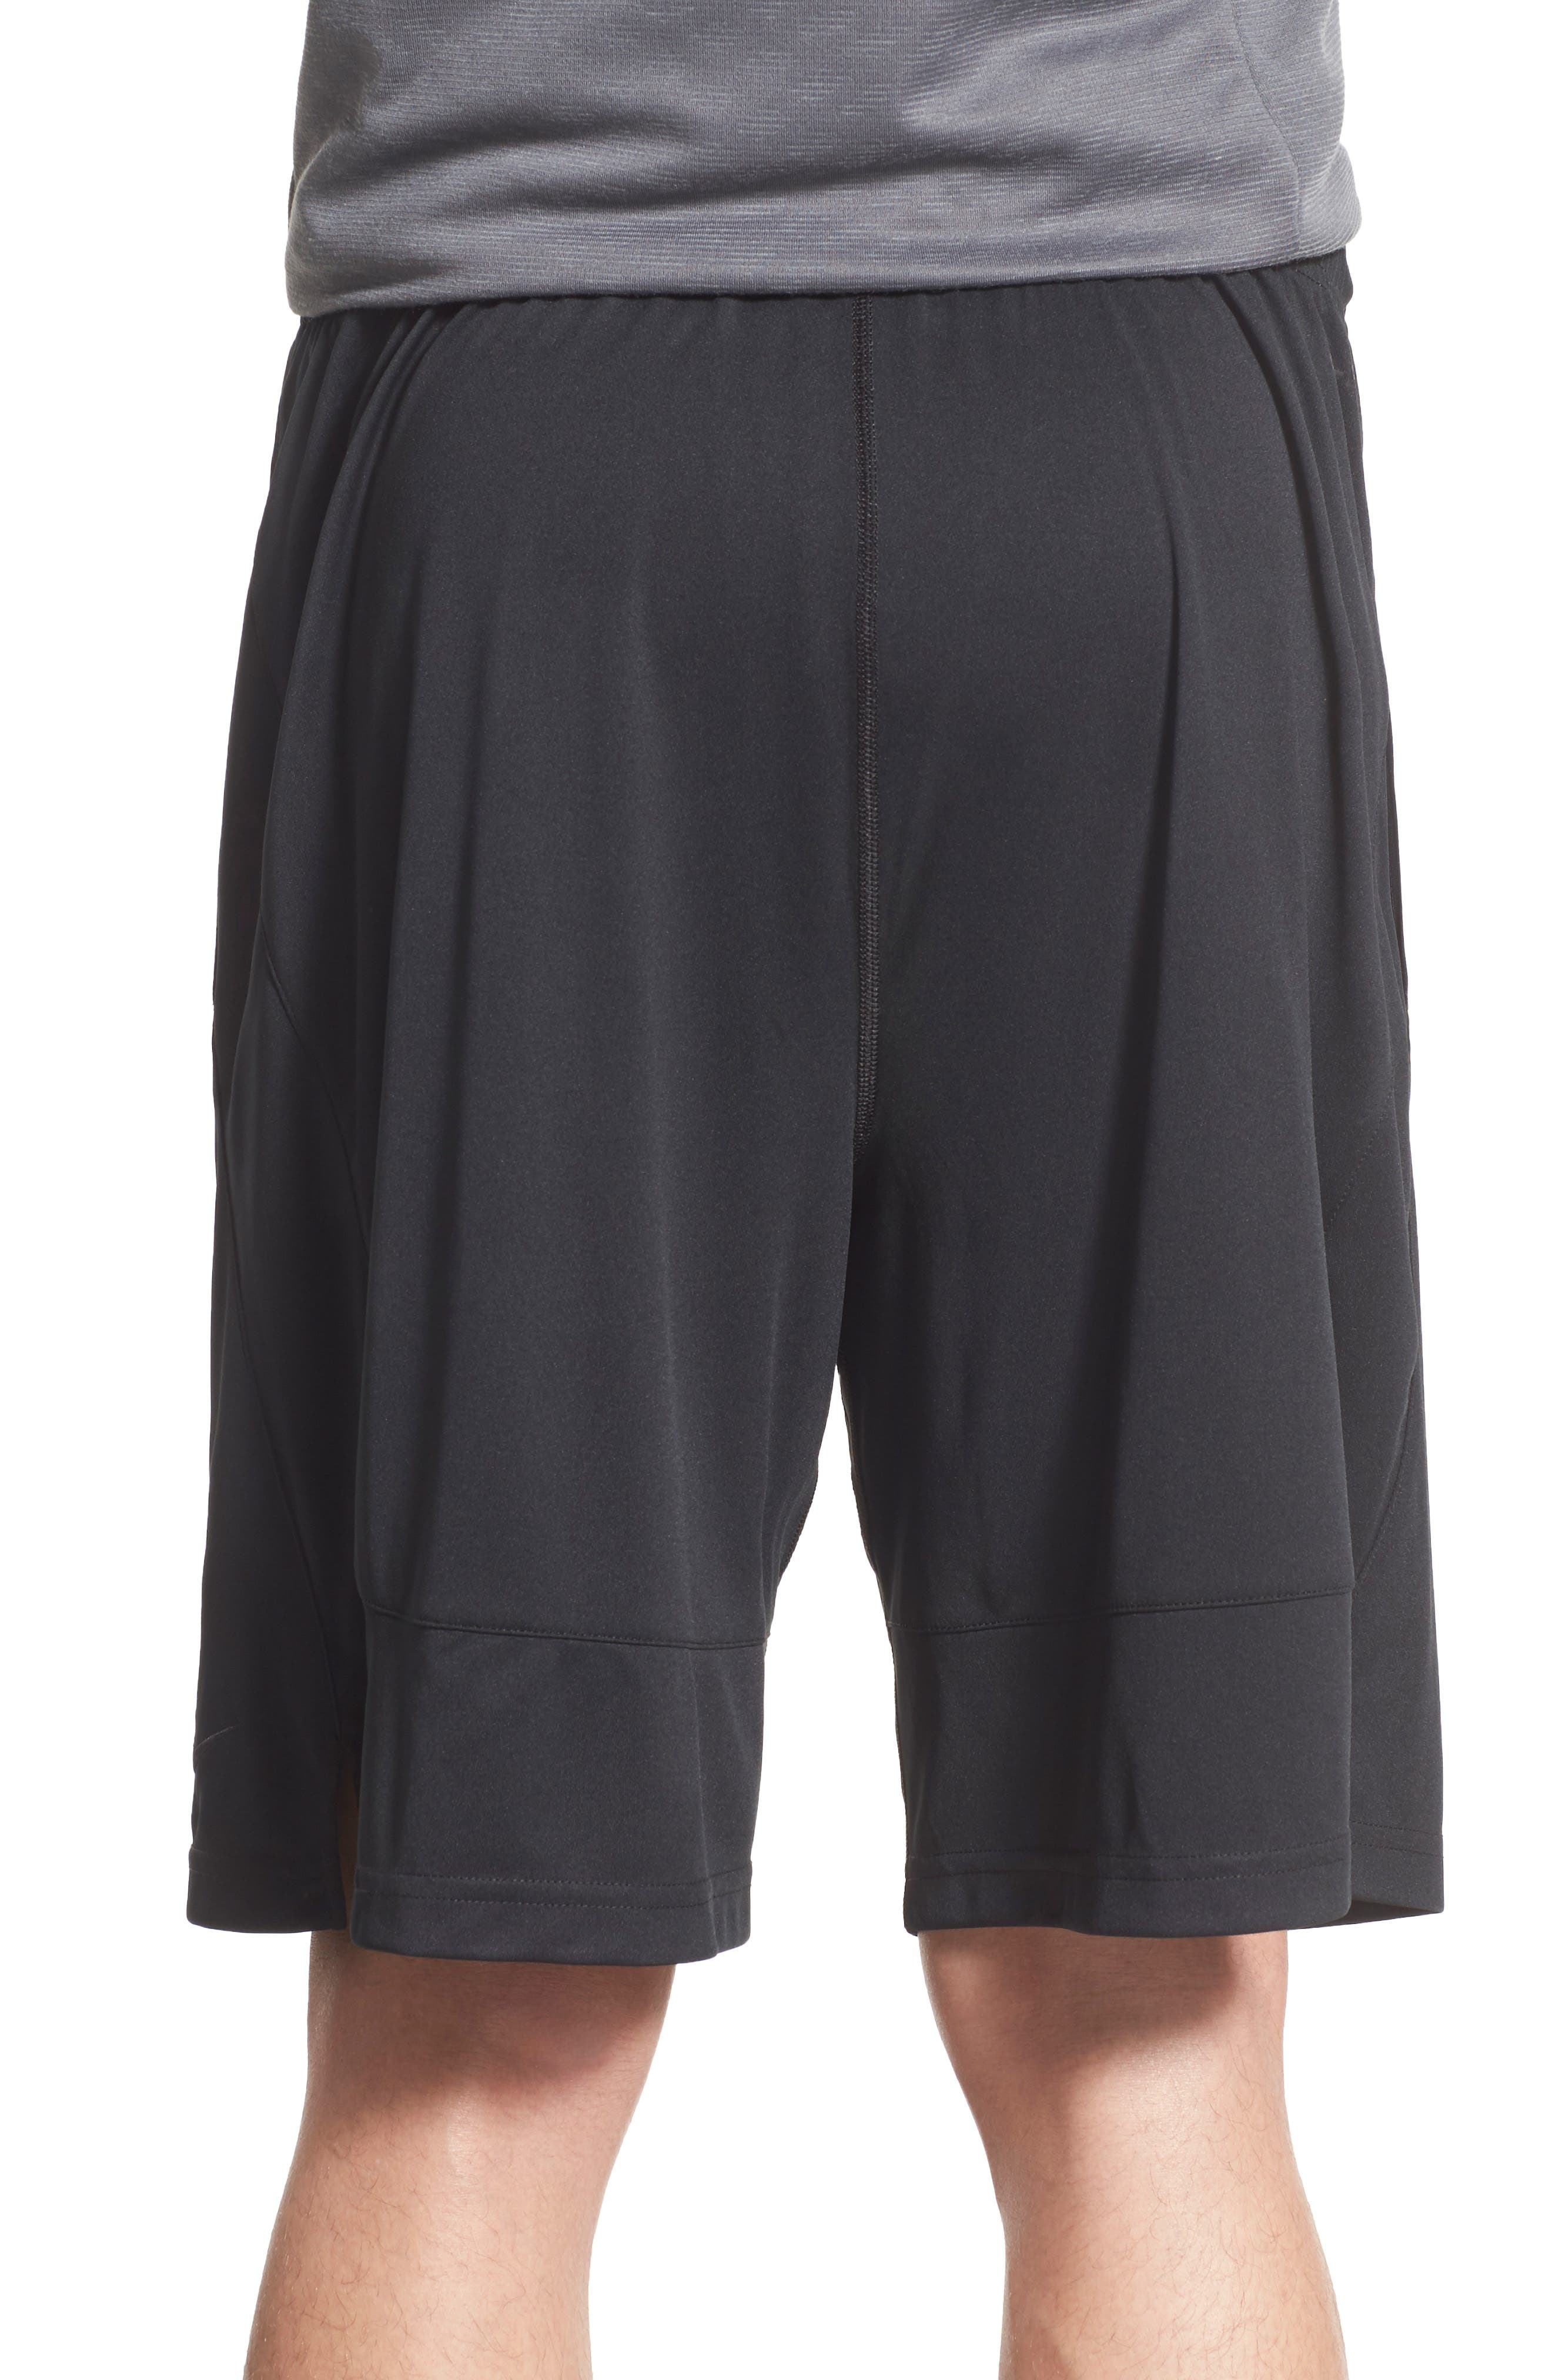 Fly Athletic Shorts,                             Alternate thumbnail 2, color,                             Black/ D Grey